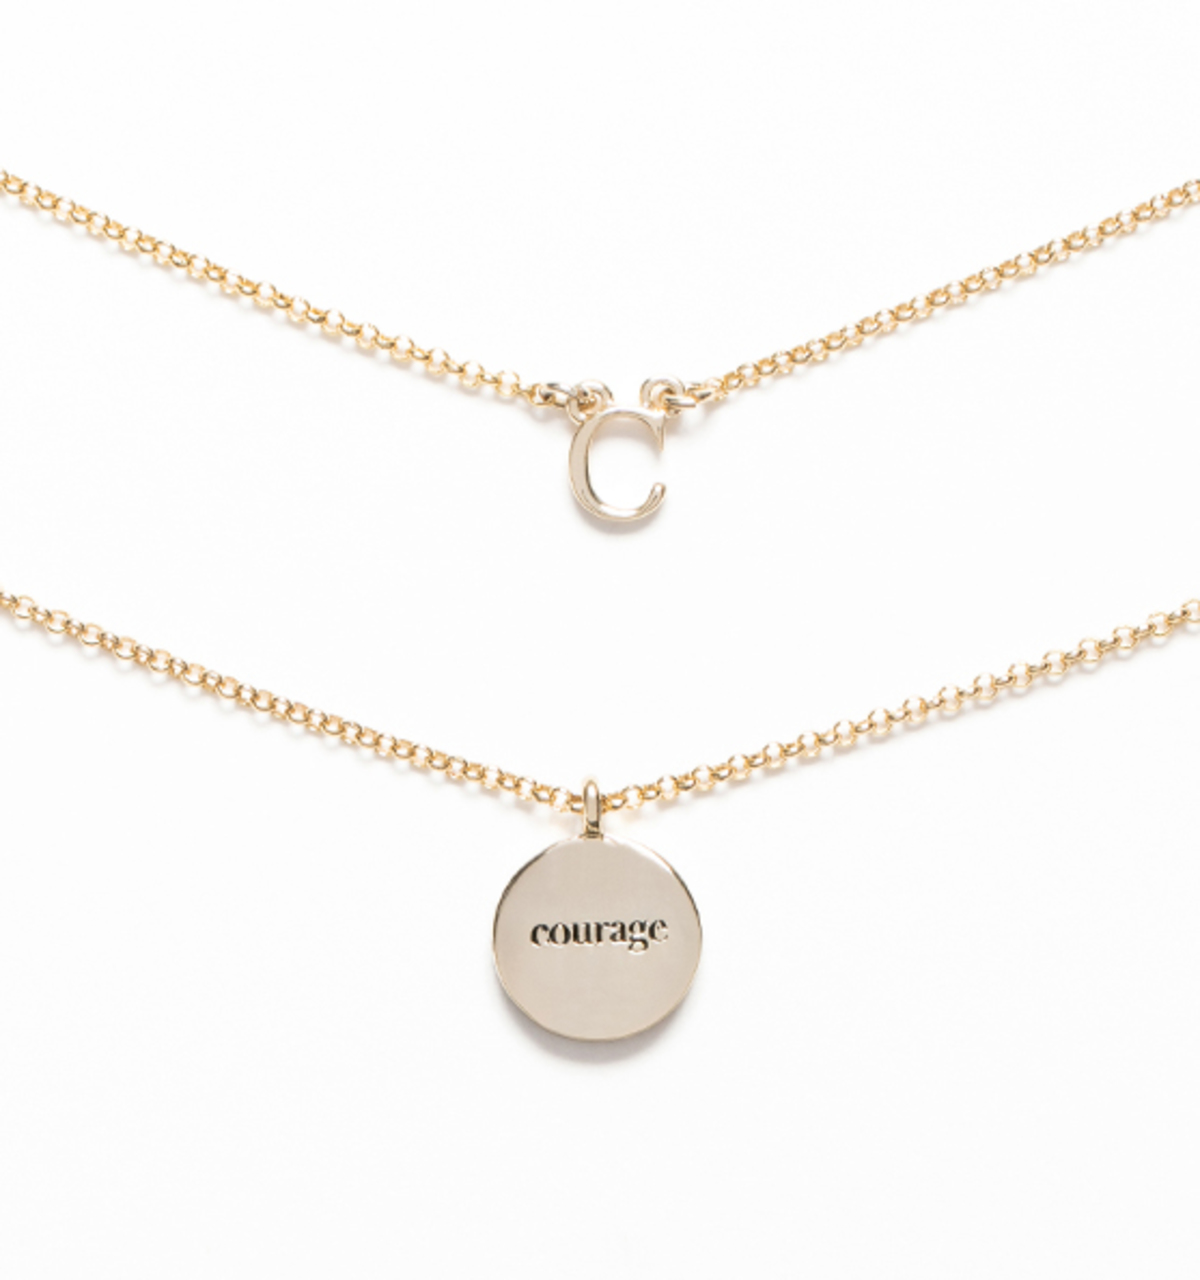 by products ivanka for courage trump c necklace